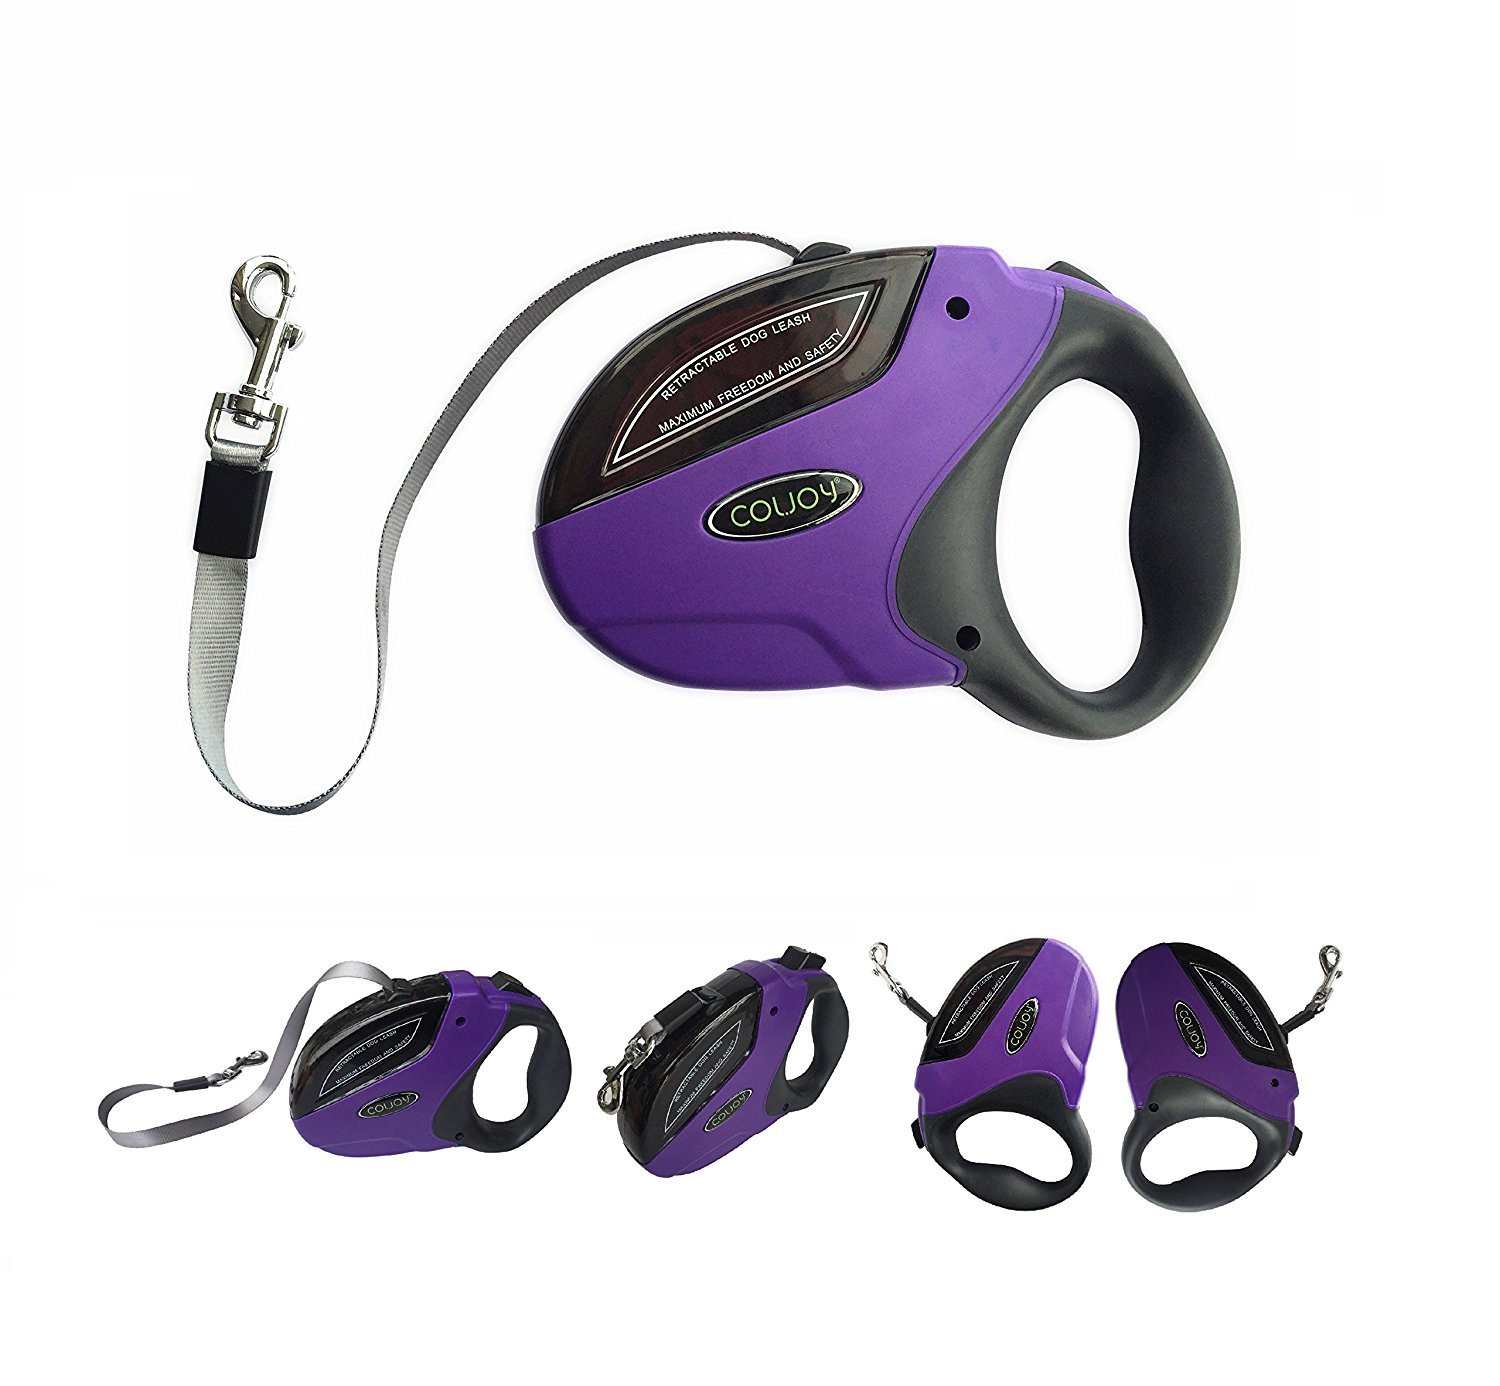 COLJOY Retractable Dog Leashes, Heavy Duty Nylon No Tangle Pet Leash Dog Lead 16ft for Small Medium Large Dogs up to 110lbs with One Button Break & Lock and Easy Instant Retraction, 1pc Purple